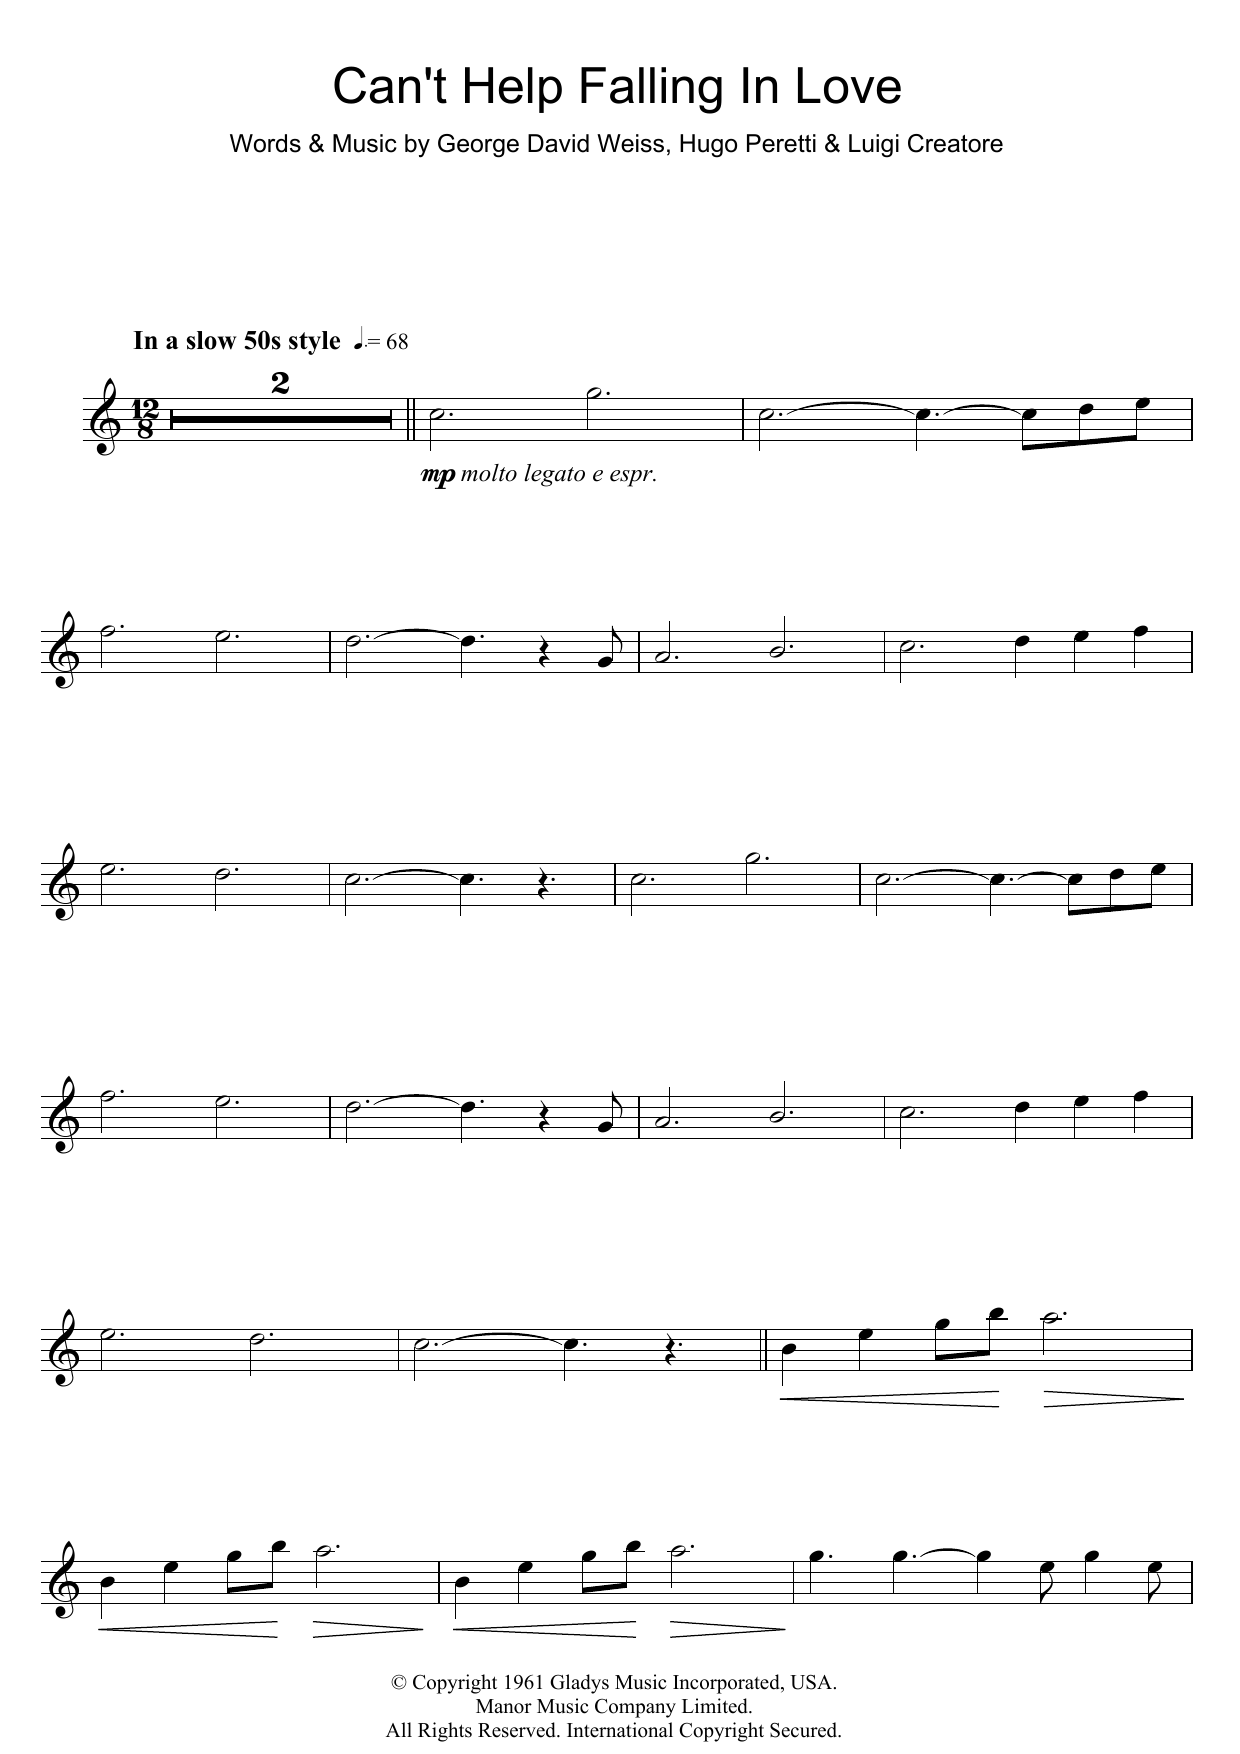 can't help falling in love sheet music by ub40 for piano/keyboard